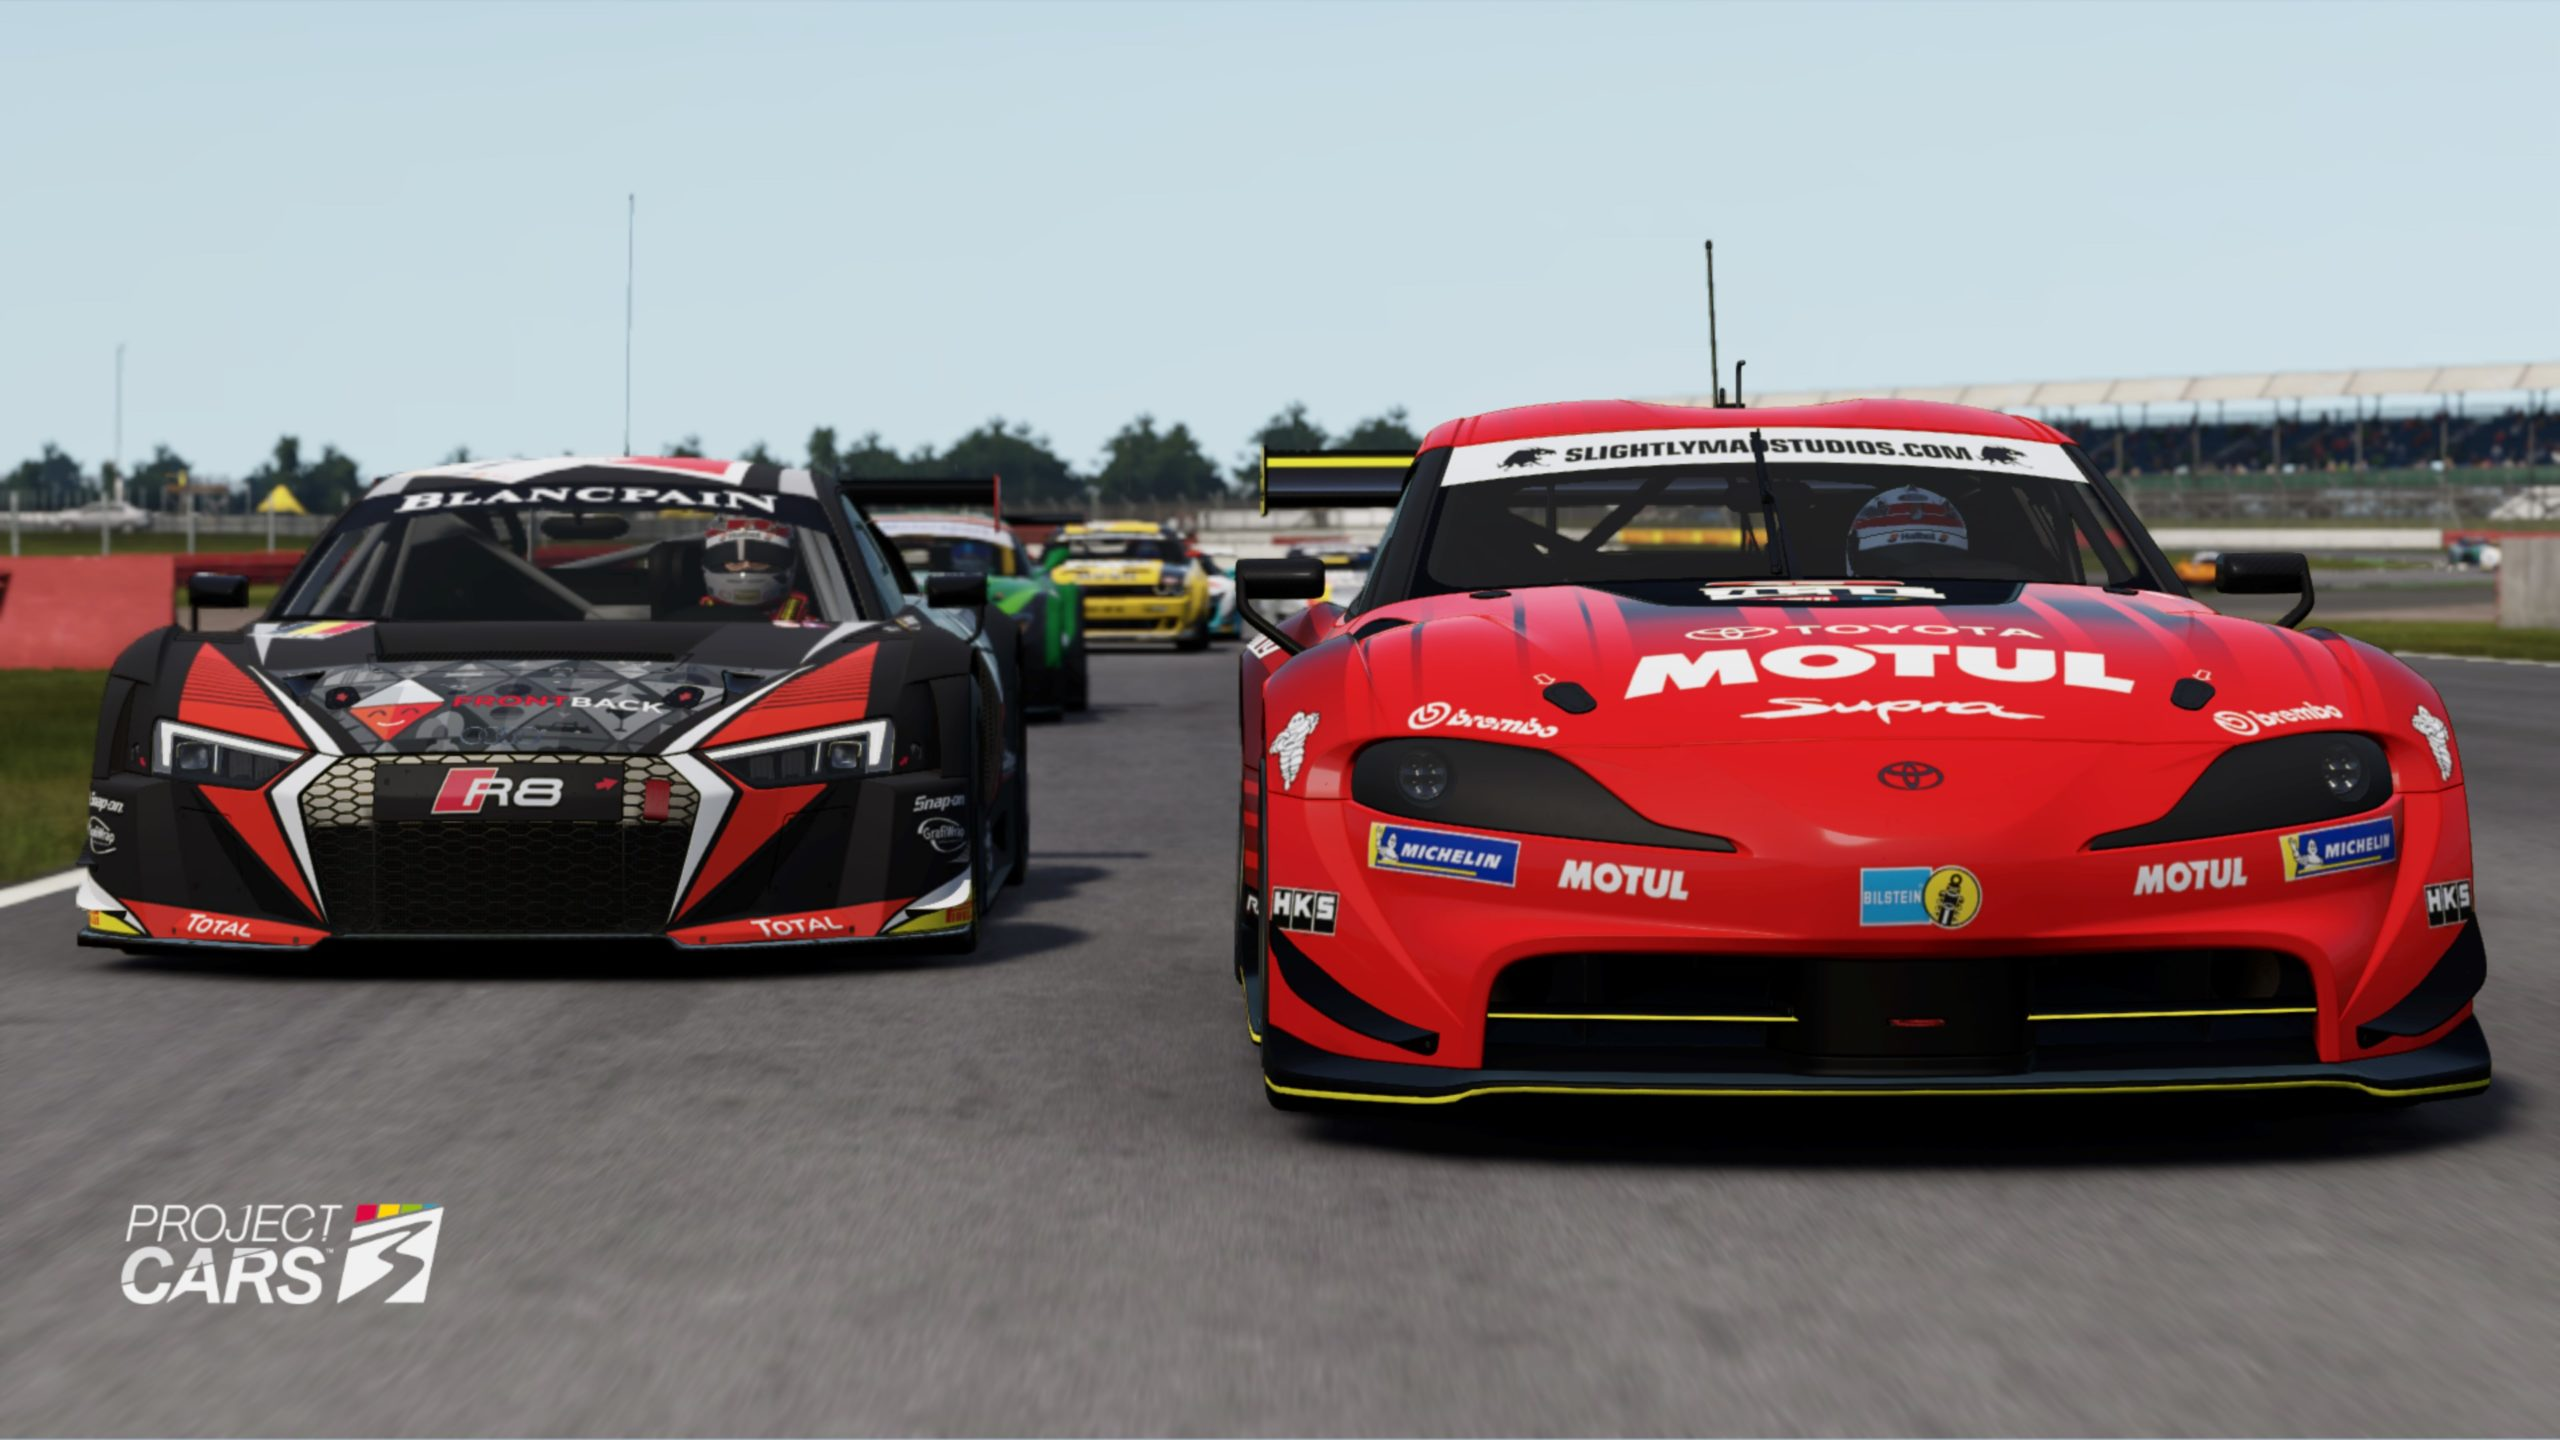 Project Cars 3 Is Heading In An Exciting New Direction Godisageek Com